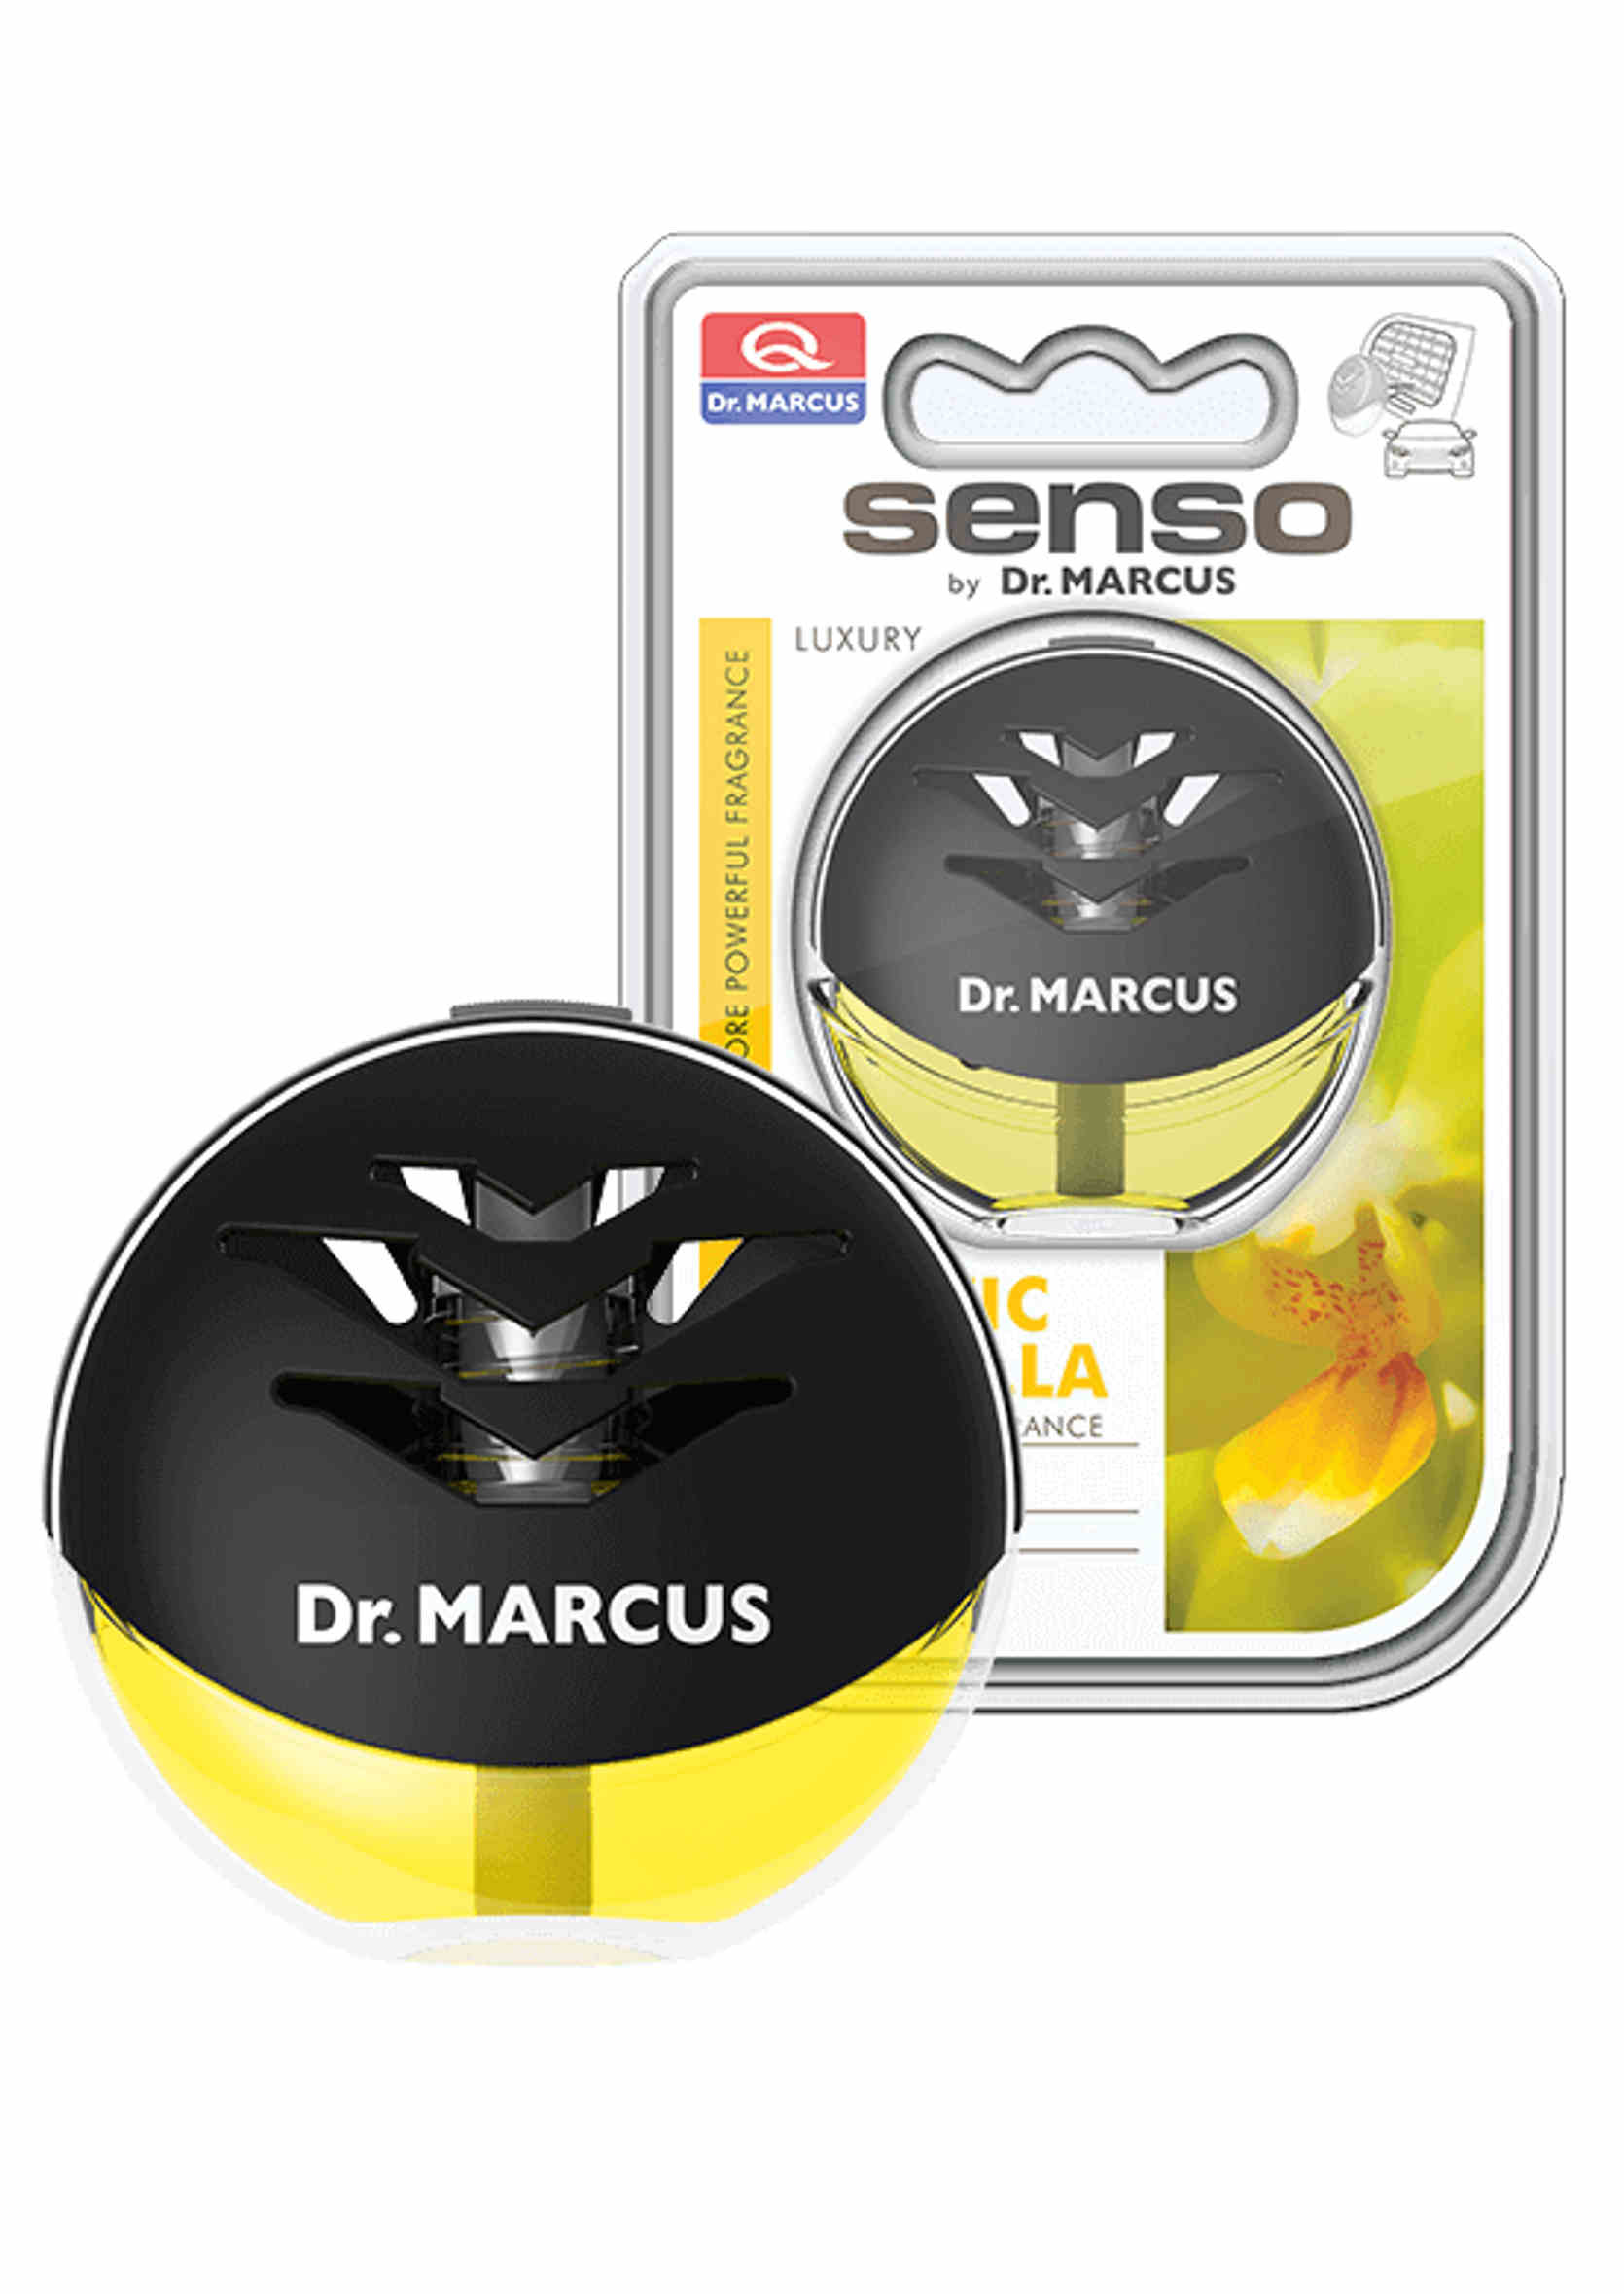 Dr. Marcus Senso Luxury Exotic Wanilia 10ml Zapach do Auta